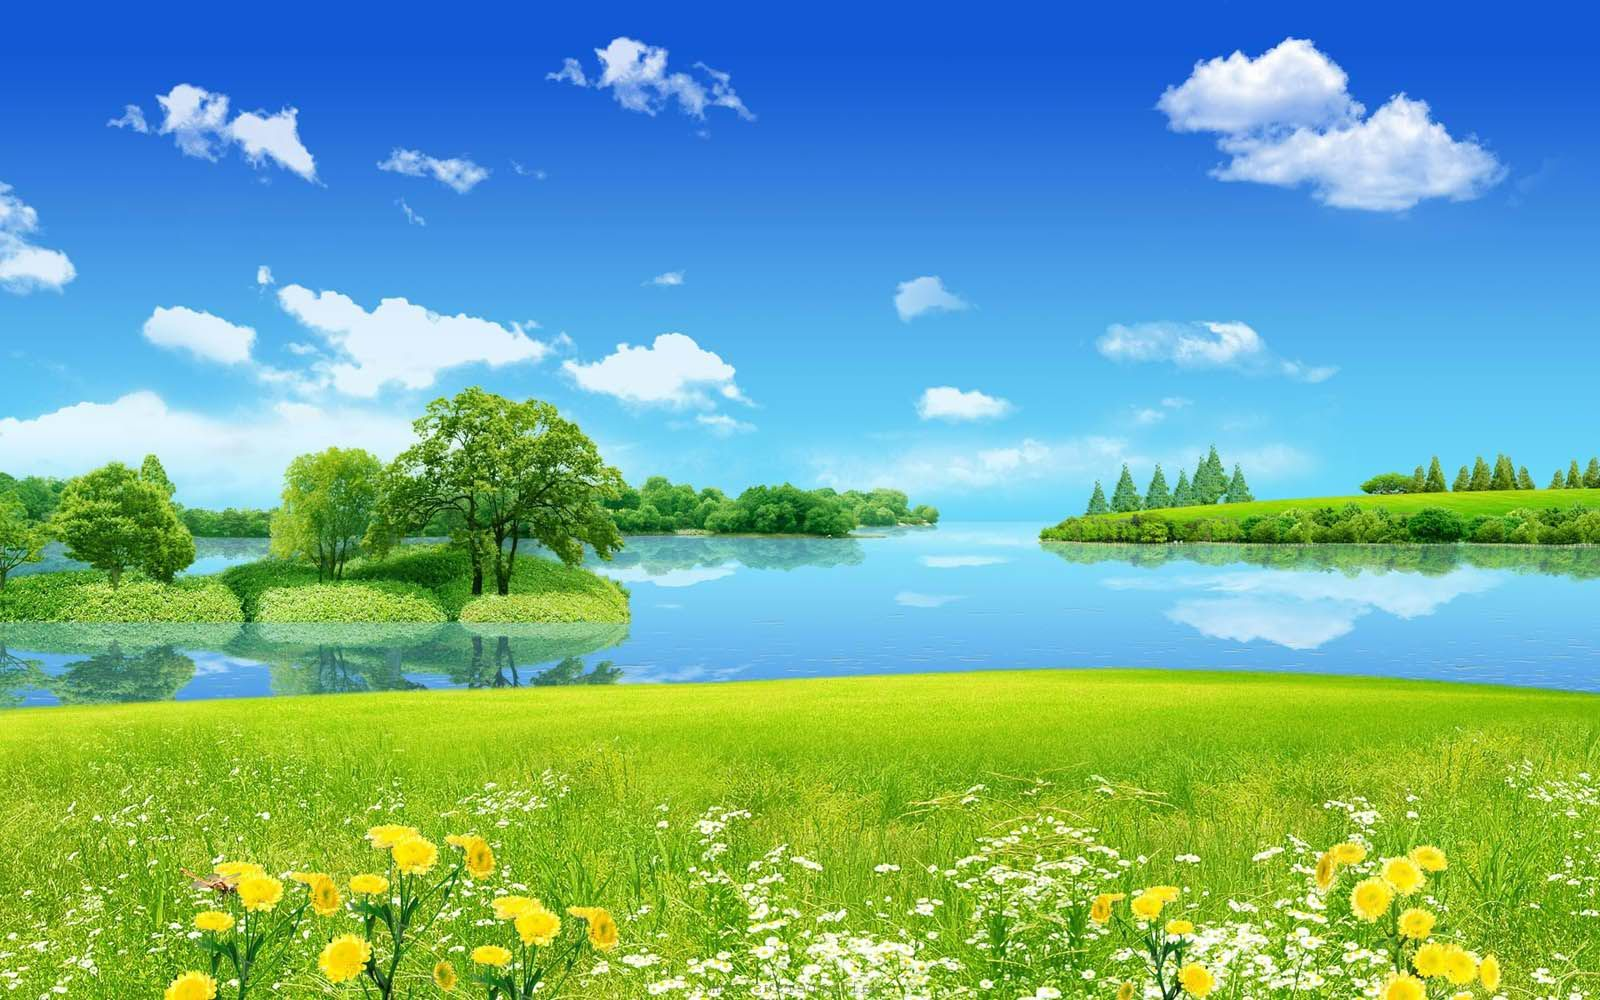 Love This Place Hd Nature Wallpapers Beautiful Nature Wallpaper Nature Desktop